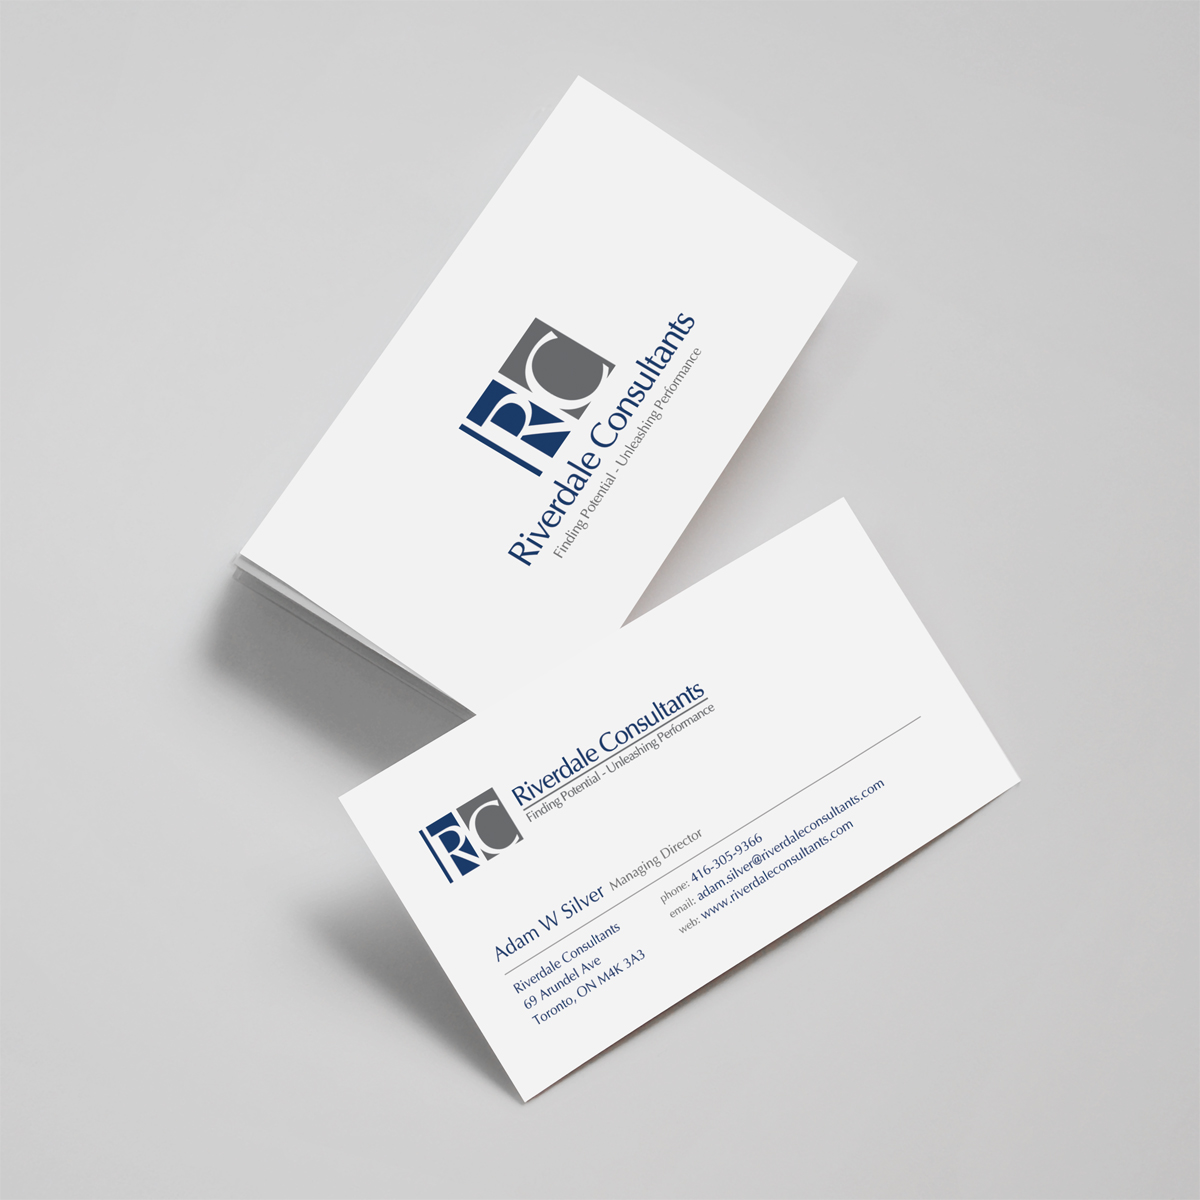 Mckinsey Business Card Image collections - Business Card Template